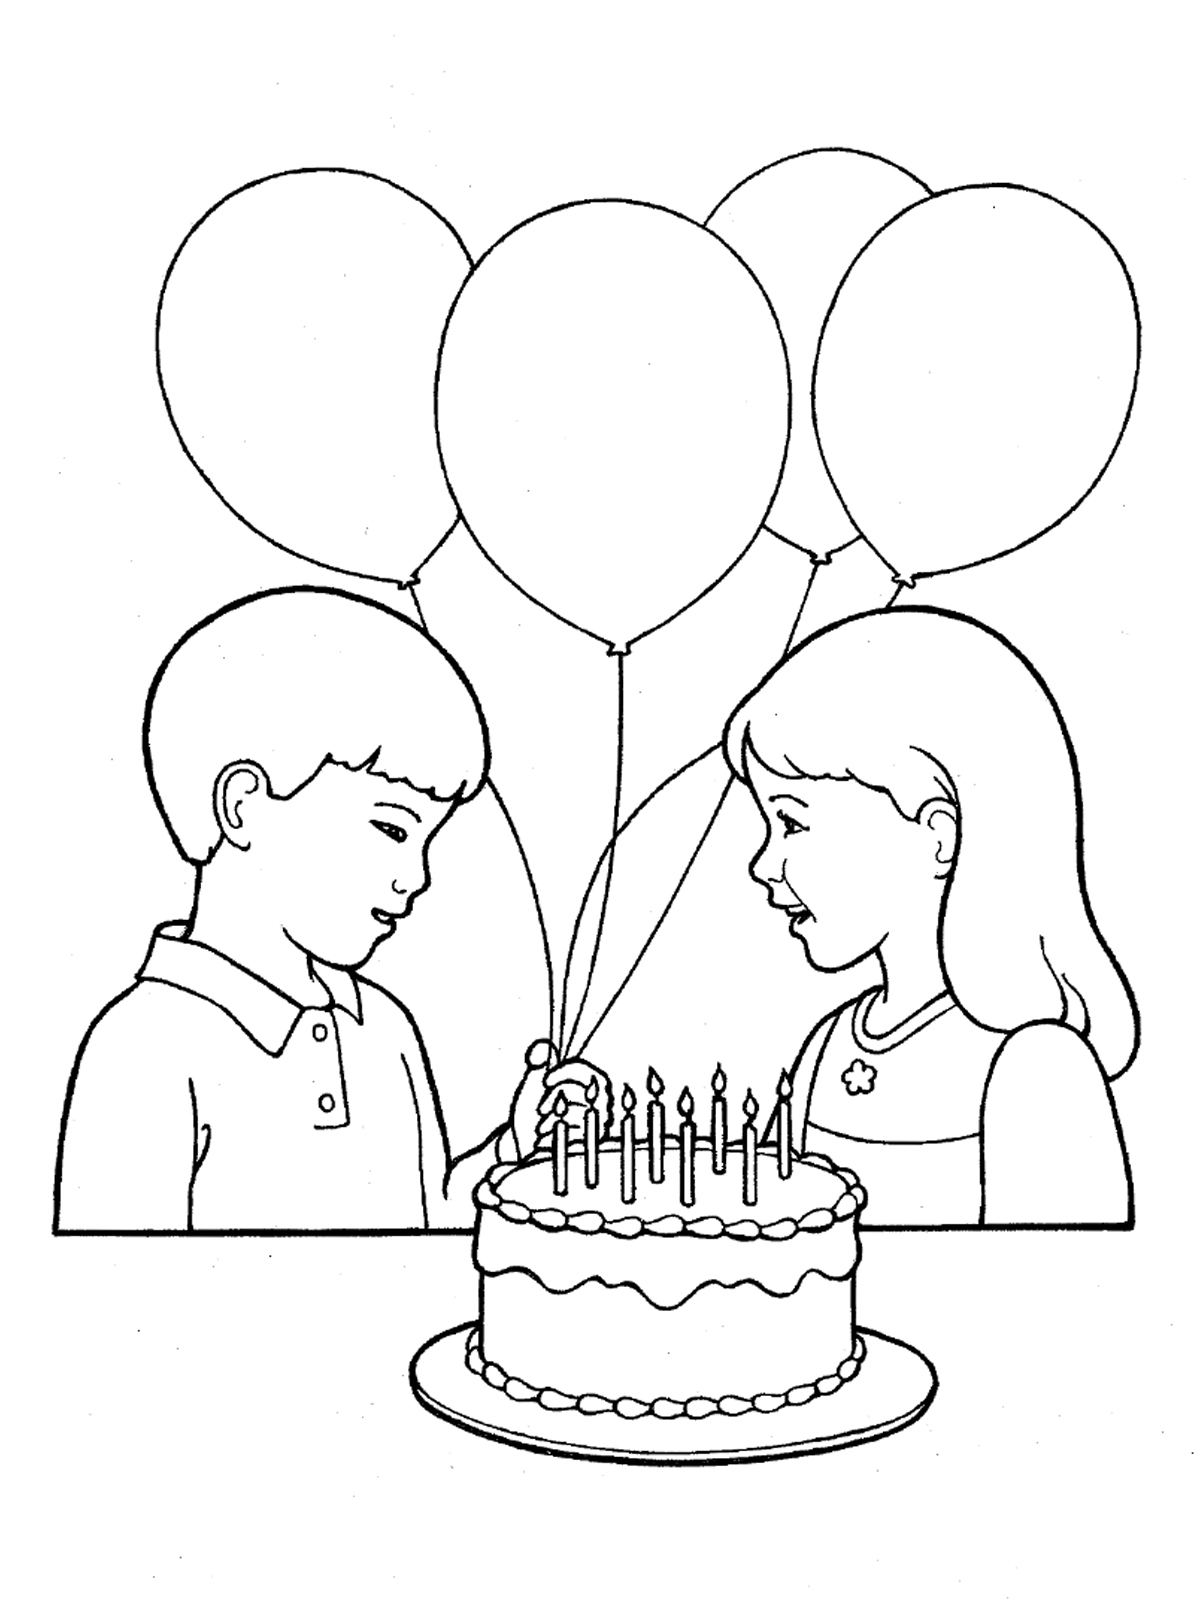 birthday party drawing ; drawing-pictures-of-birthday-party-primary-children-birthday